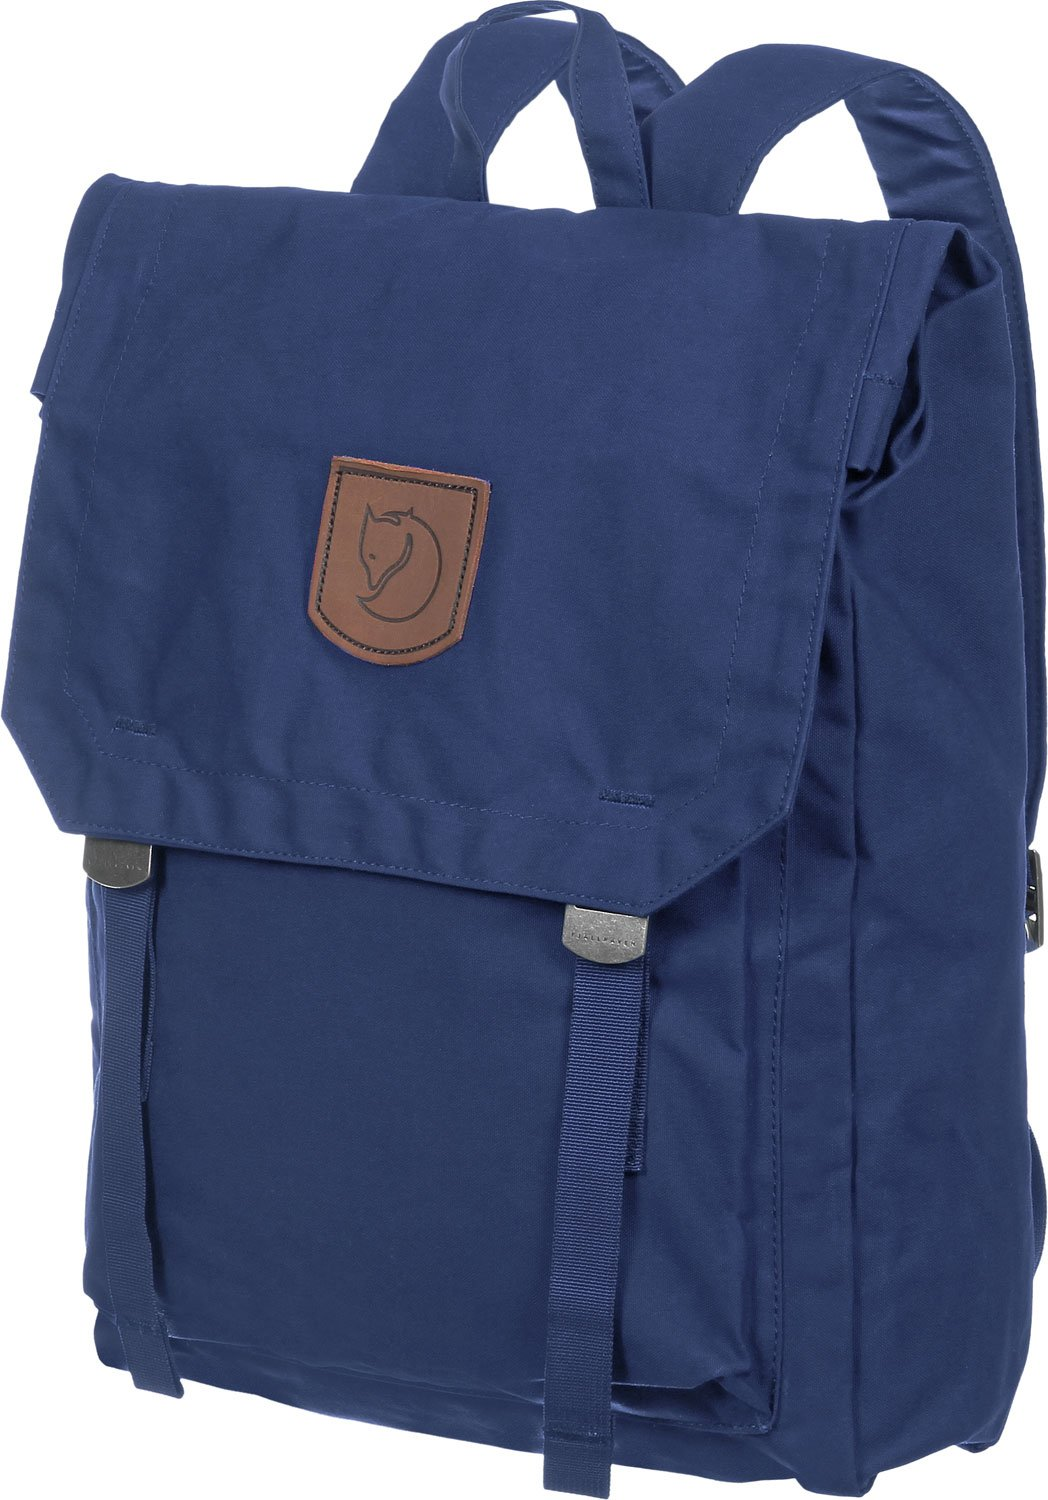 Fjallraven Foldsack No.1, Deep Blue by Fjallraven